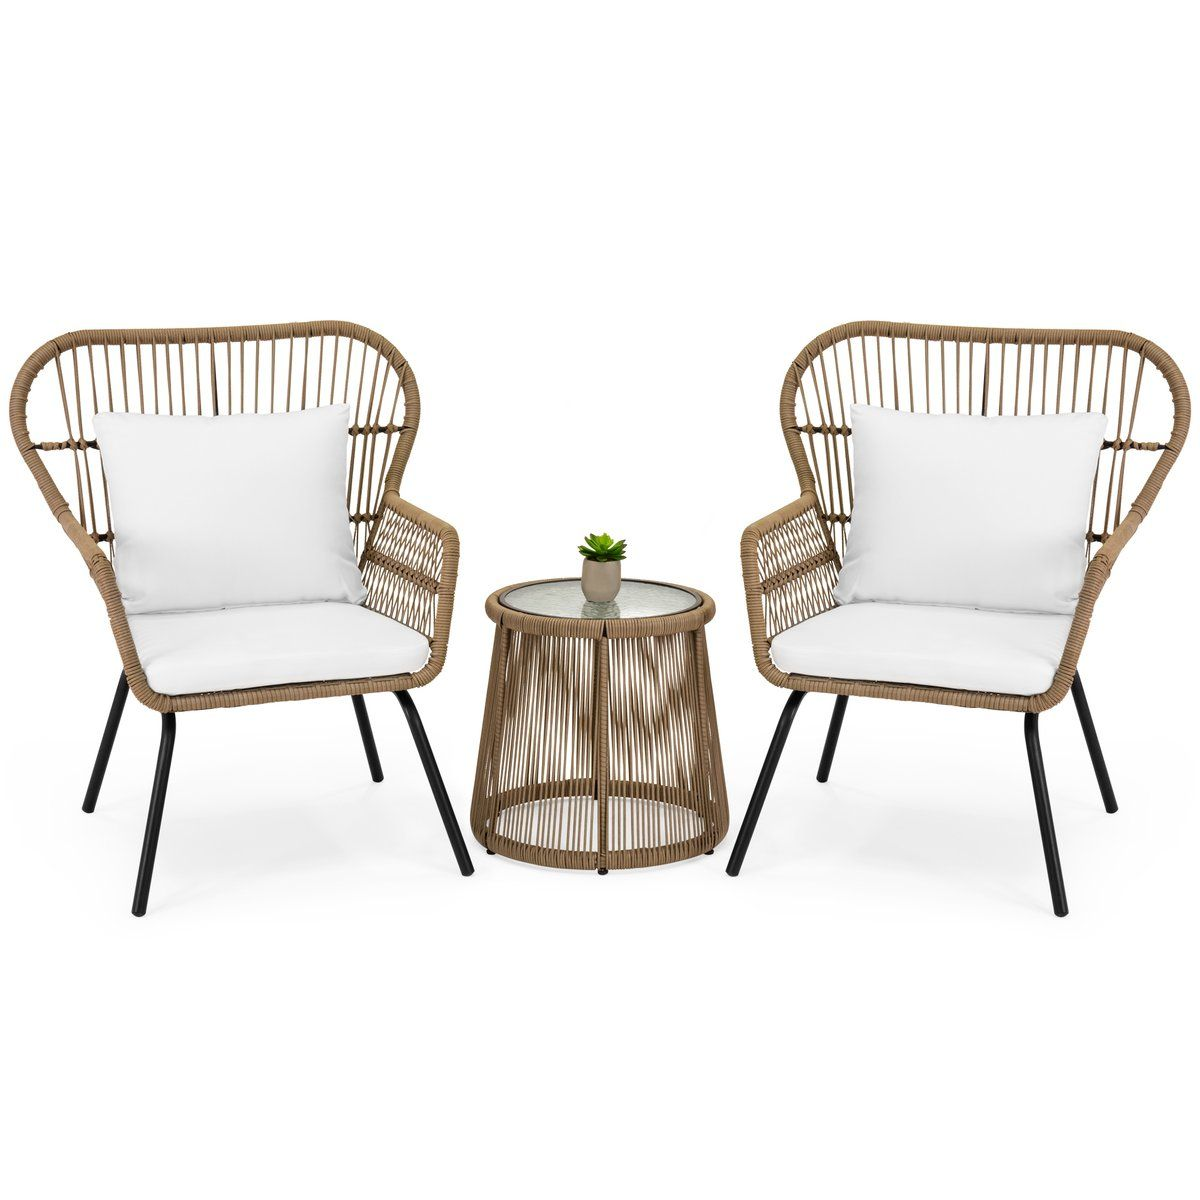 3 Piece Patio Wicker Conversation Bistro Set W 2 Chairs Table